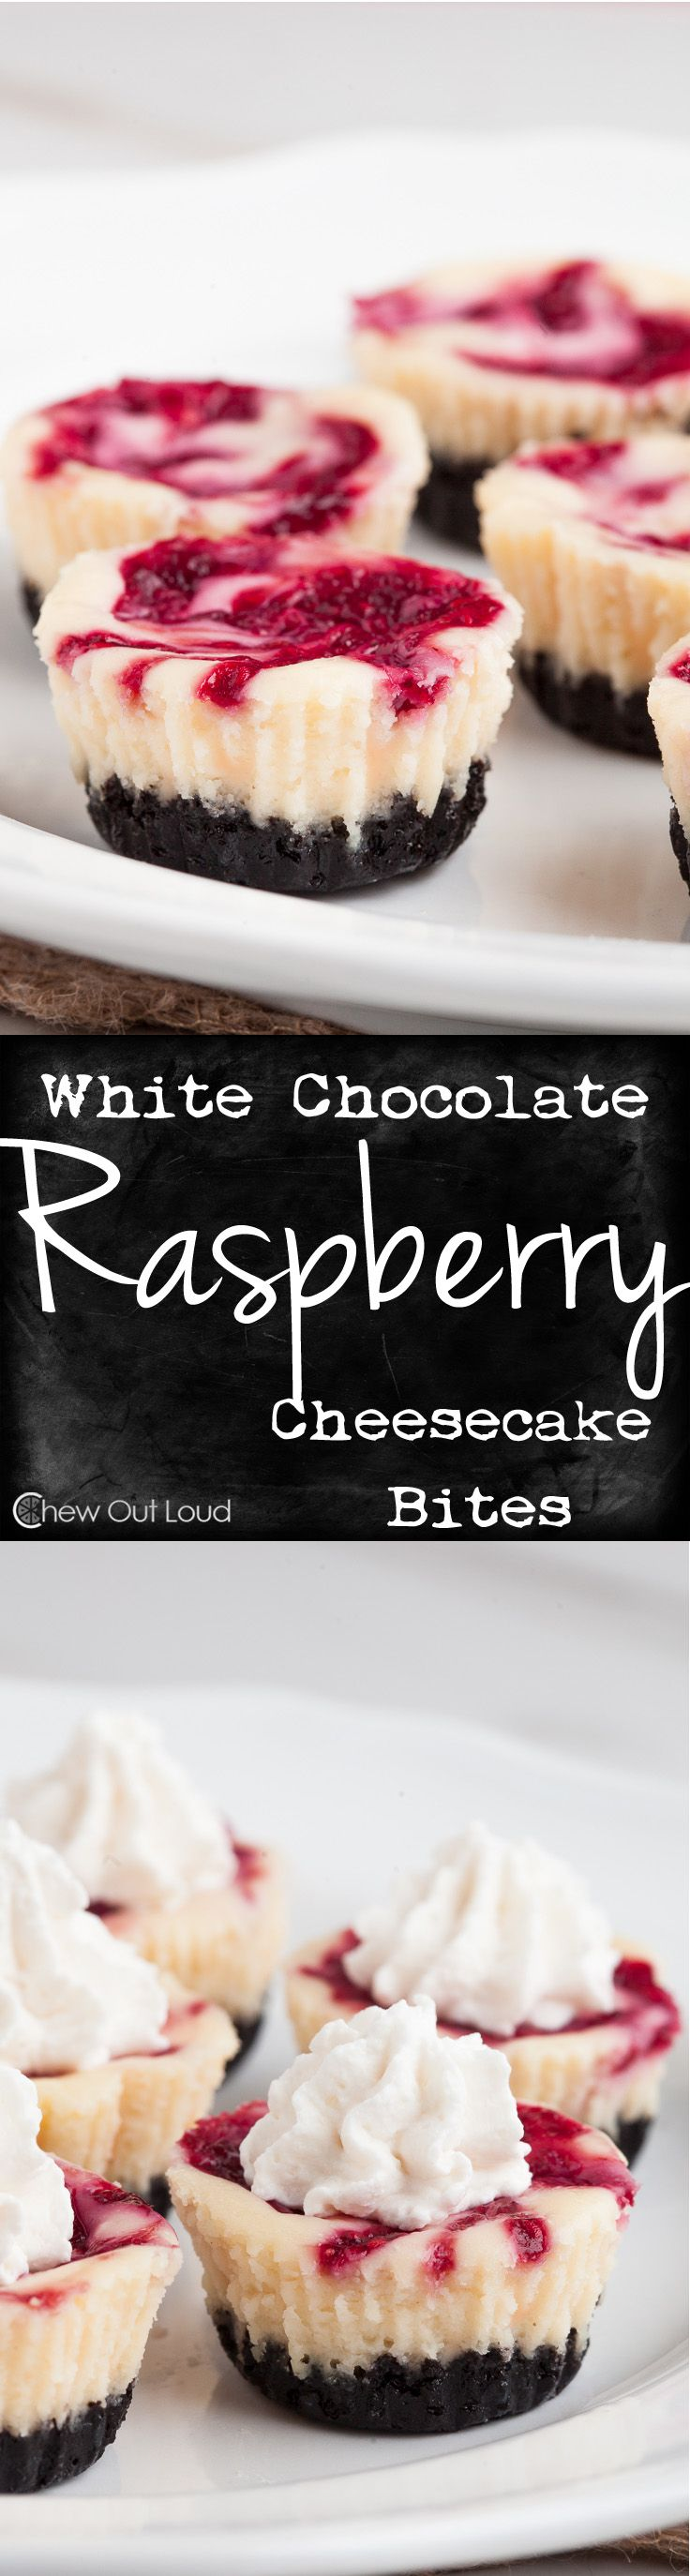 Bites Recipe online Cheesecake  and Chocolate Chocolate   Ny White Raspberry White Raspberry   Cheesecakes Raspberry Style australia Chocolate necklaces